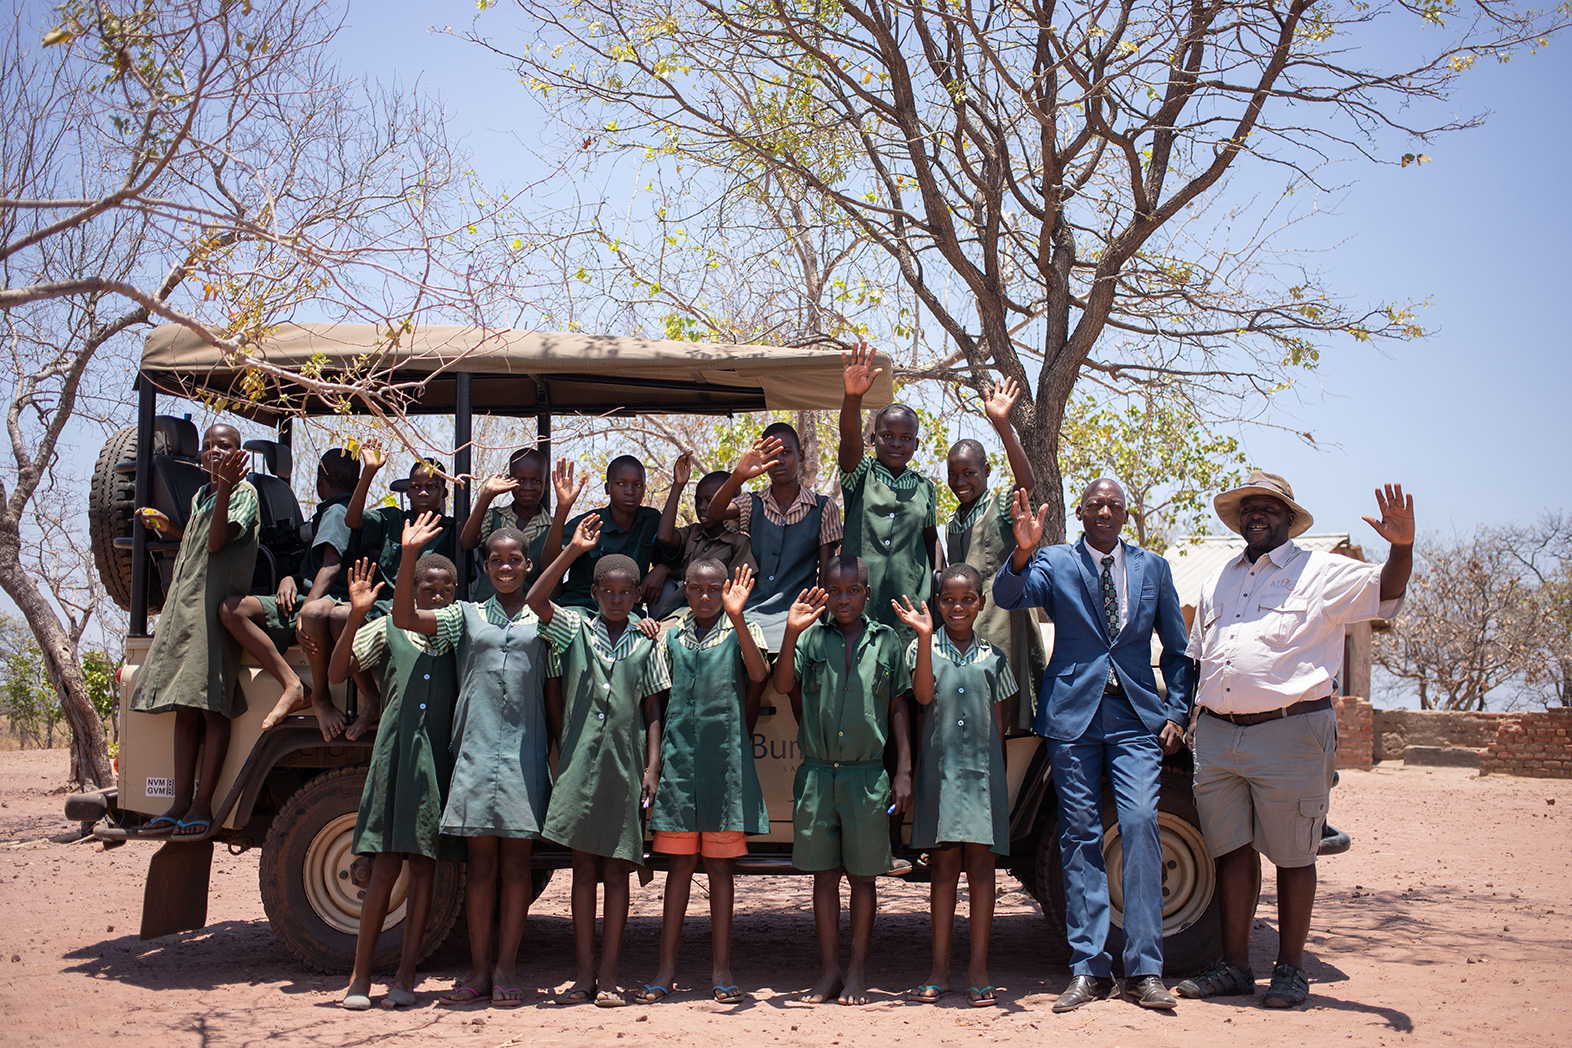 Hand sanitizer Covid-19 Health Procedures & Medical Evacuations - African Bush Camps Safari 10 Reasons Why Africa Should be First on Your Travel List Post-quarantine Foundation ABCF Community, Conservation & Education